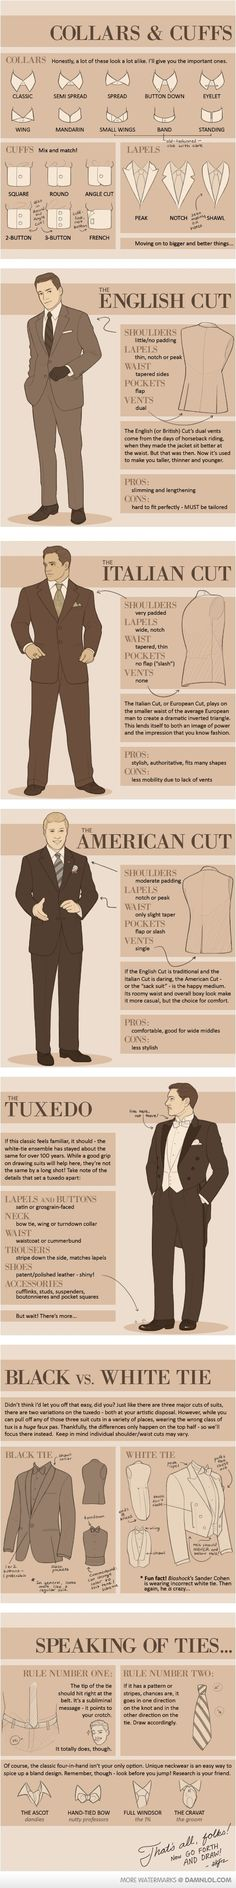 If you have no idea what the difference is between a Square Cuff and a French Cuff, get schooled before you go looking for your wedding attire with this handy infographic!